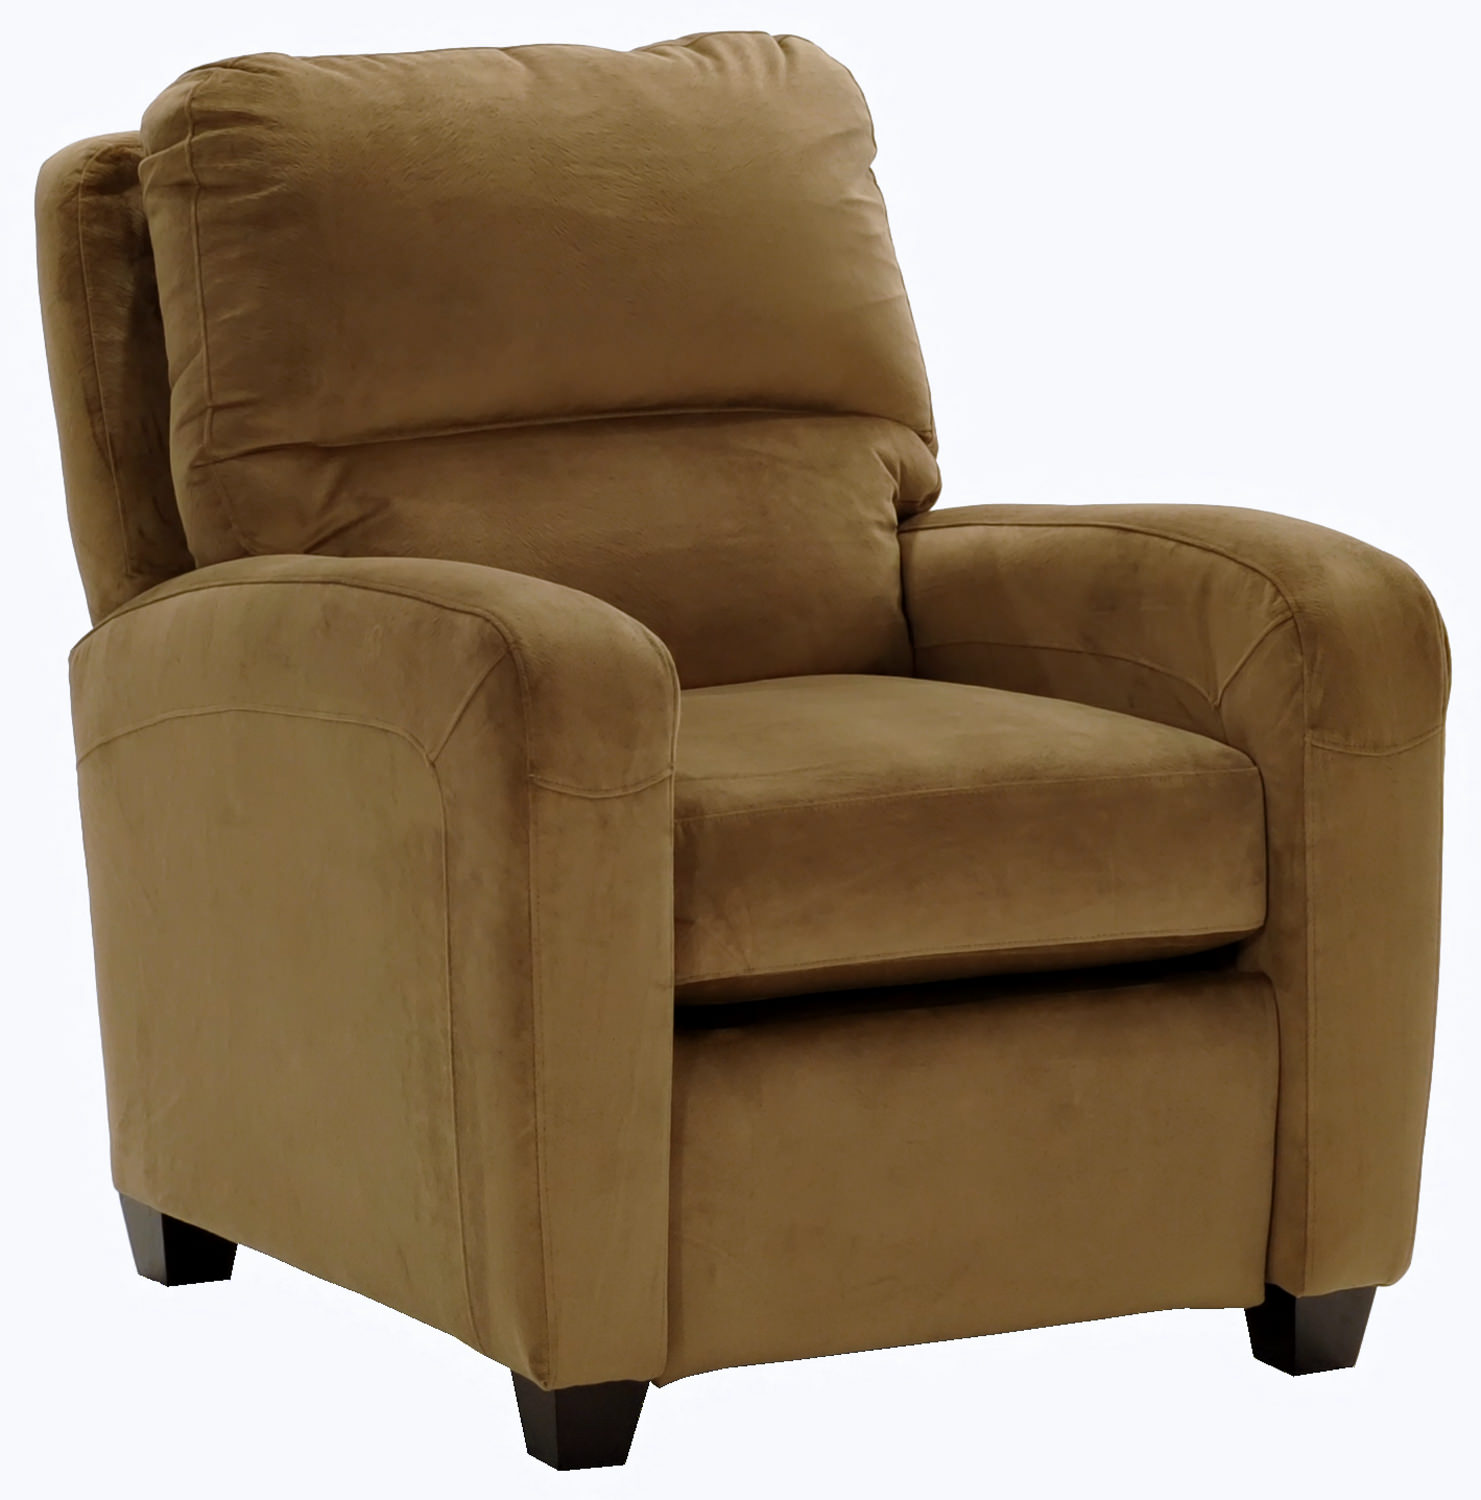 Push Back Chair Karlsson Push Back Recliner